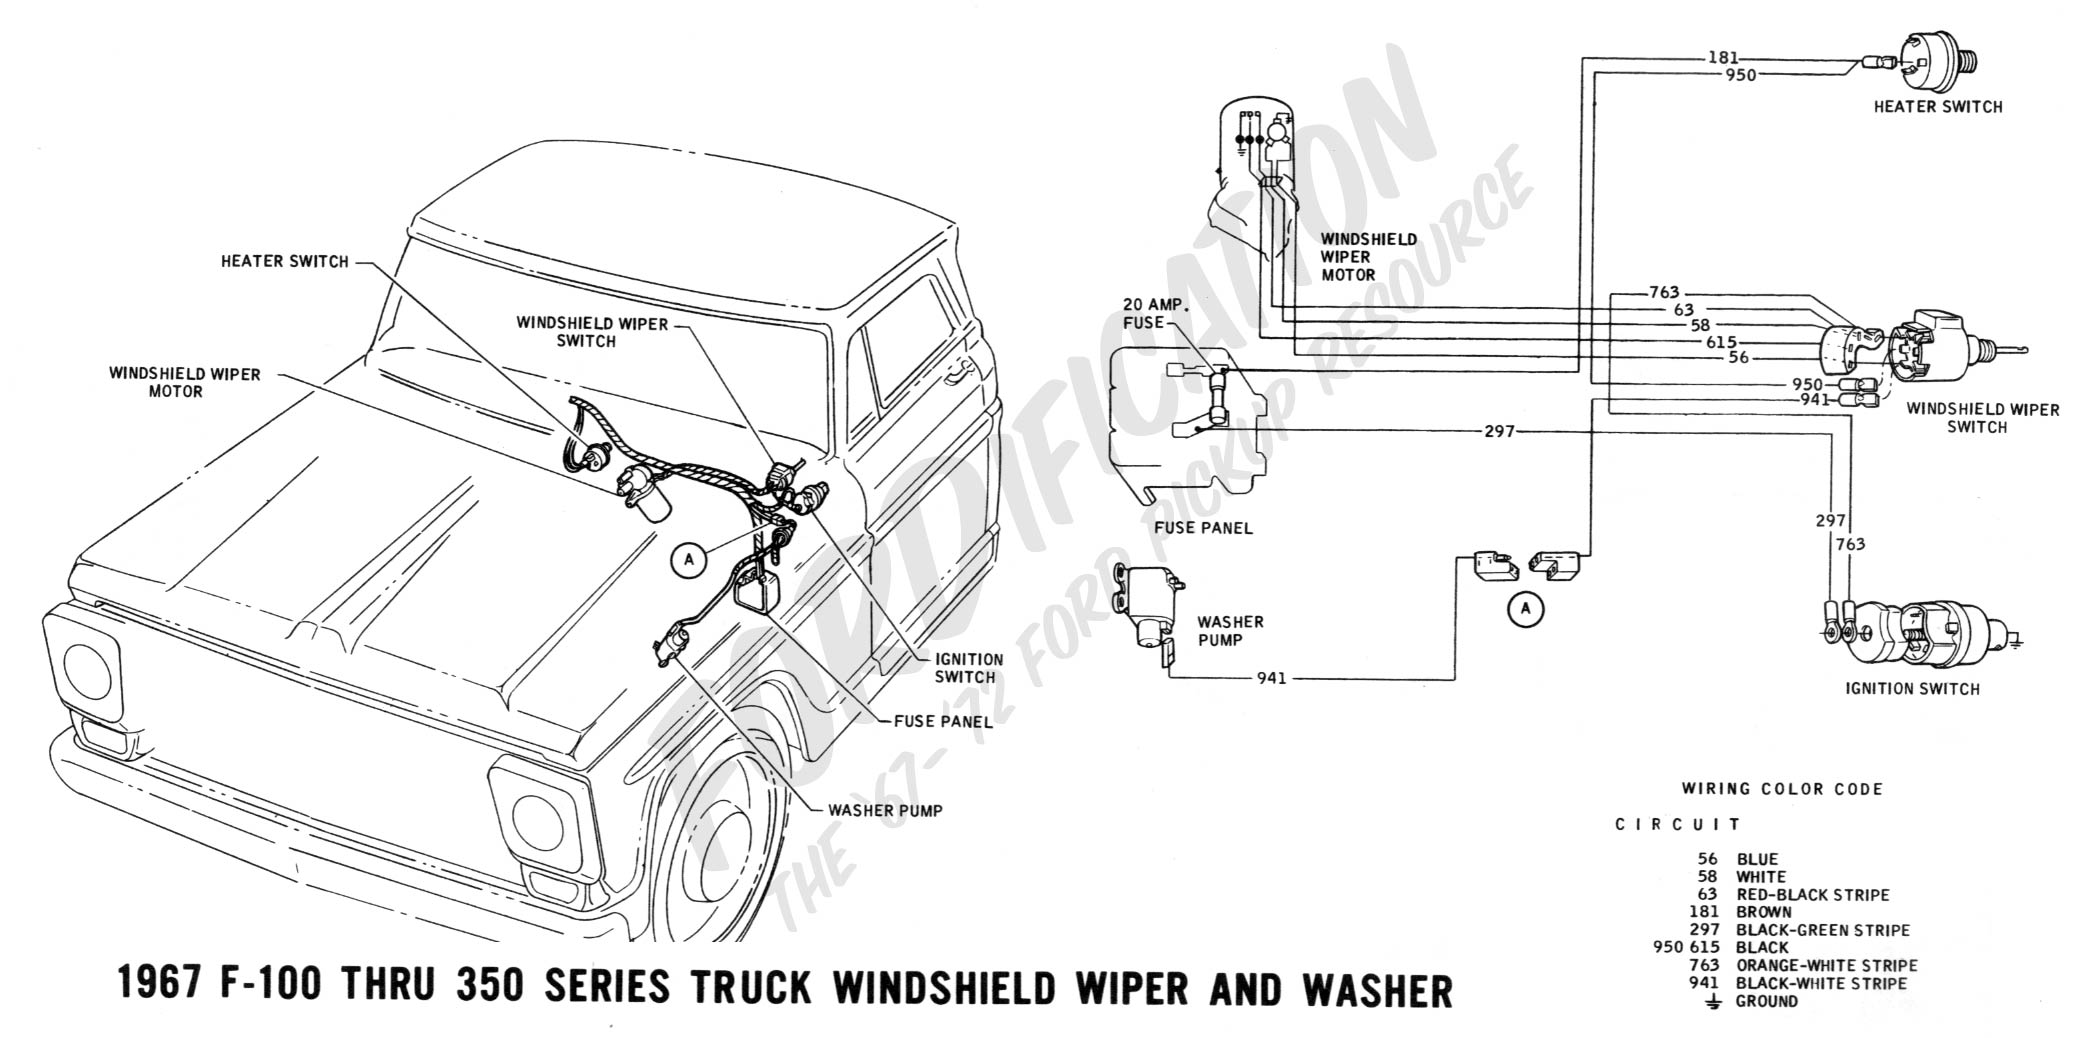 wiring 1967wipers ford truck technical drawings and schematics section h wiring wiper switch wiring diagram at honlapkeszites.co